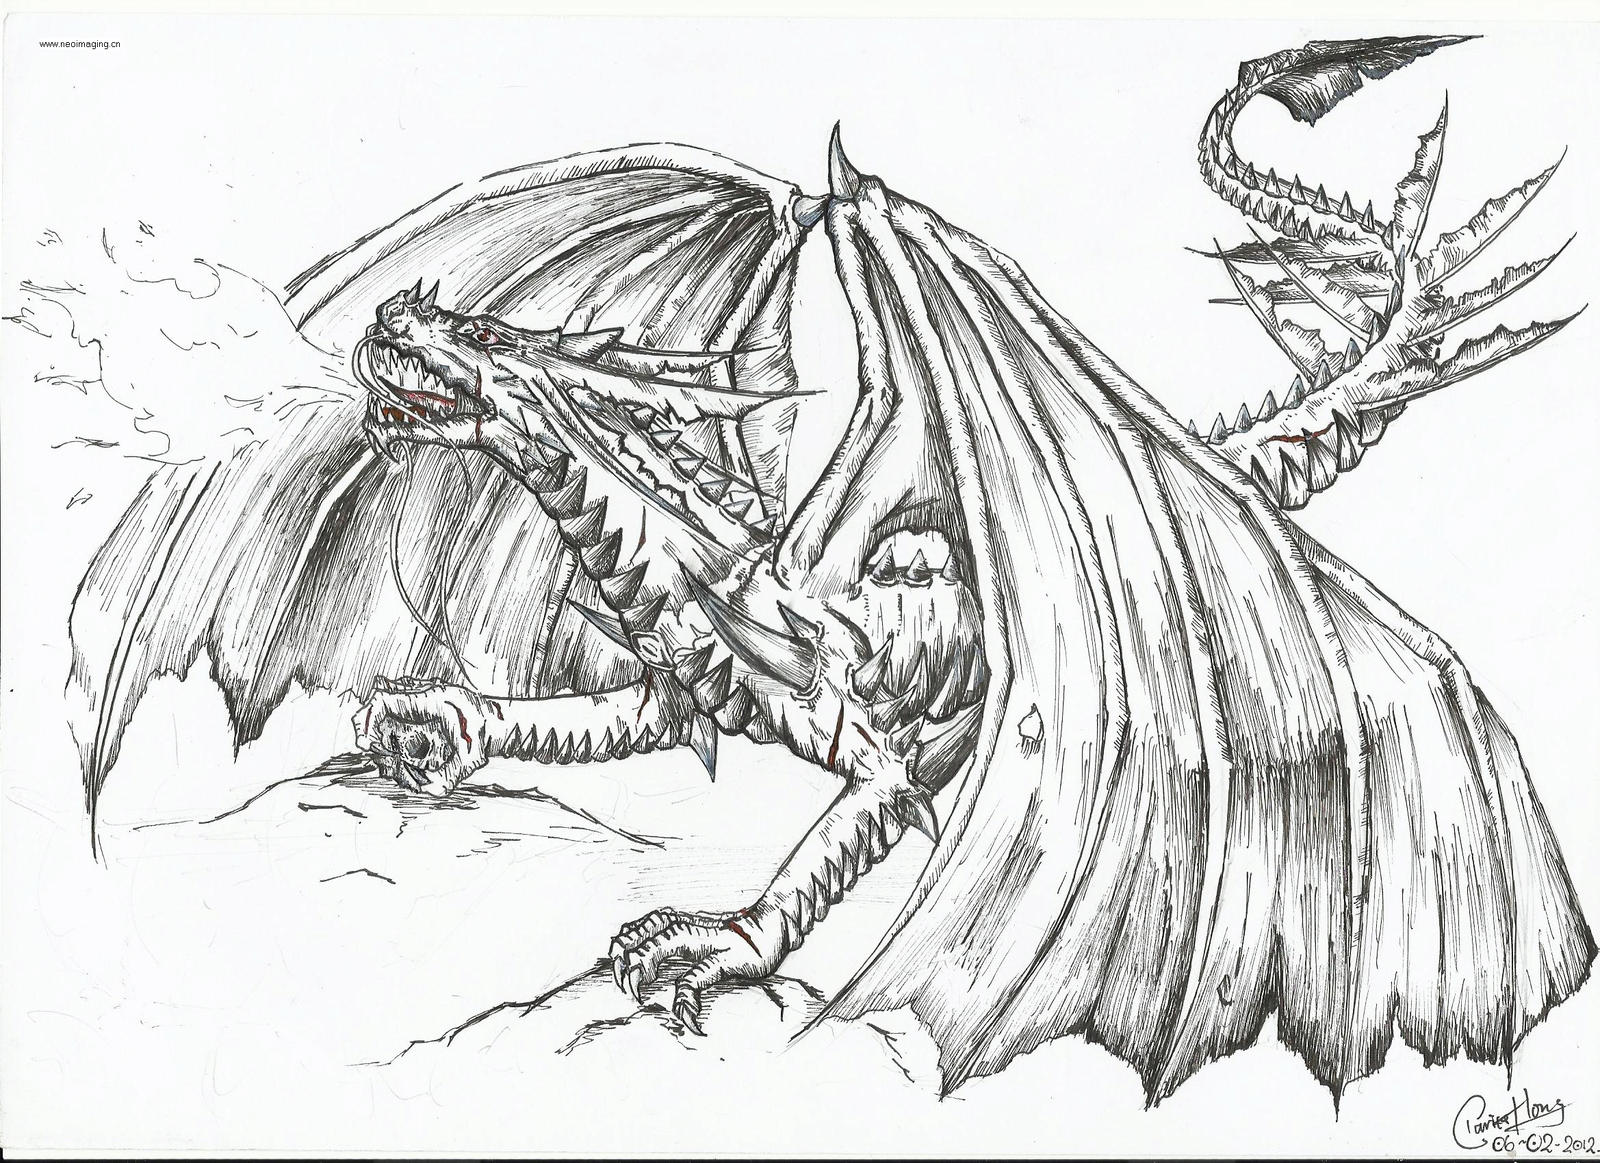 The Fire-breathing Dragon by dino-wolf on DeviantArt